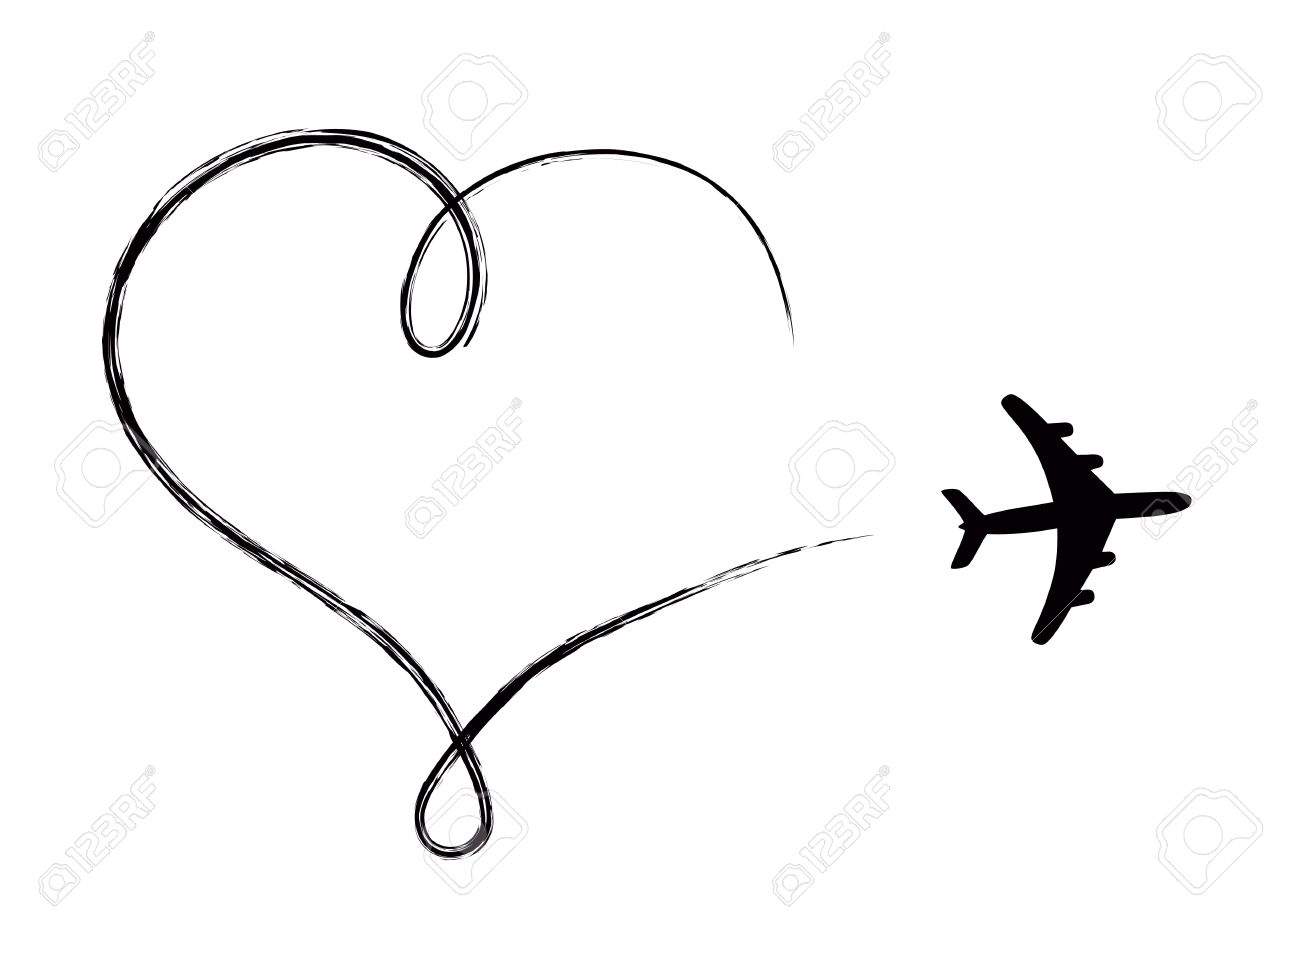 Heart shaped icon in air, made by plane Banque d'images - 25665406